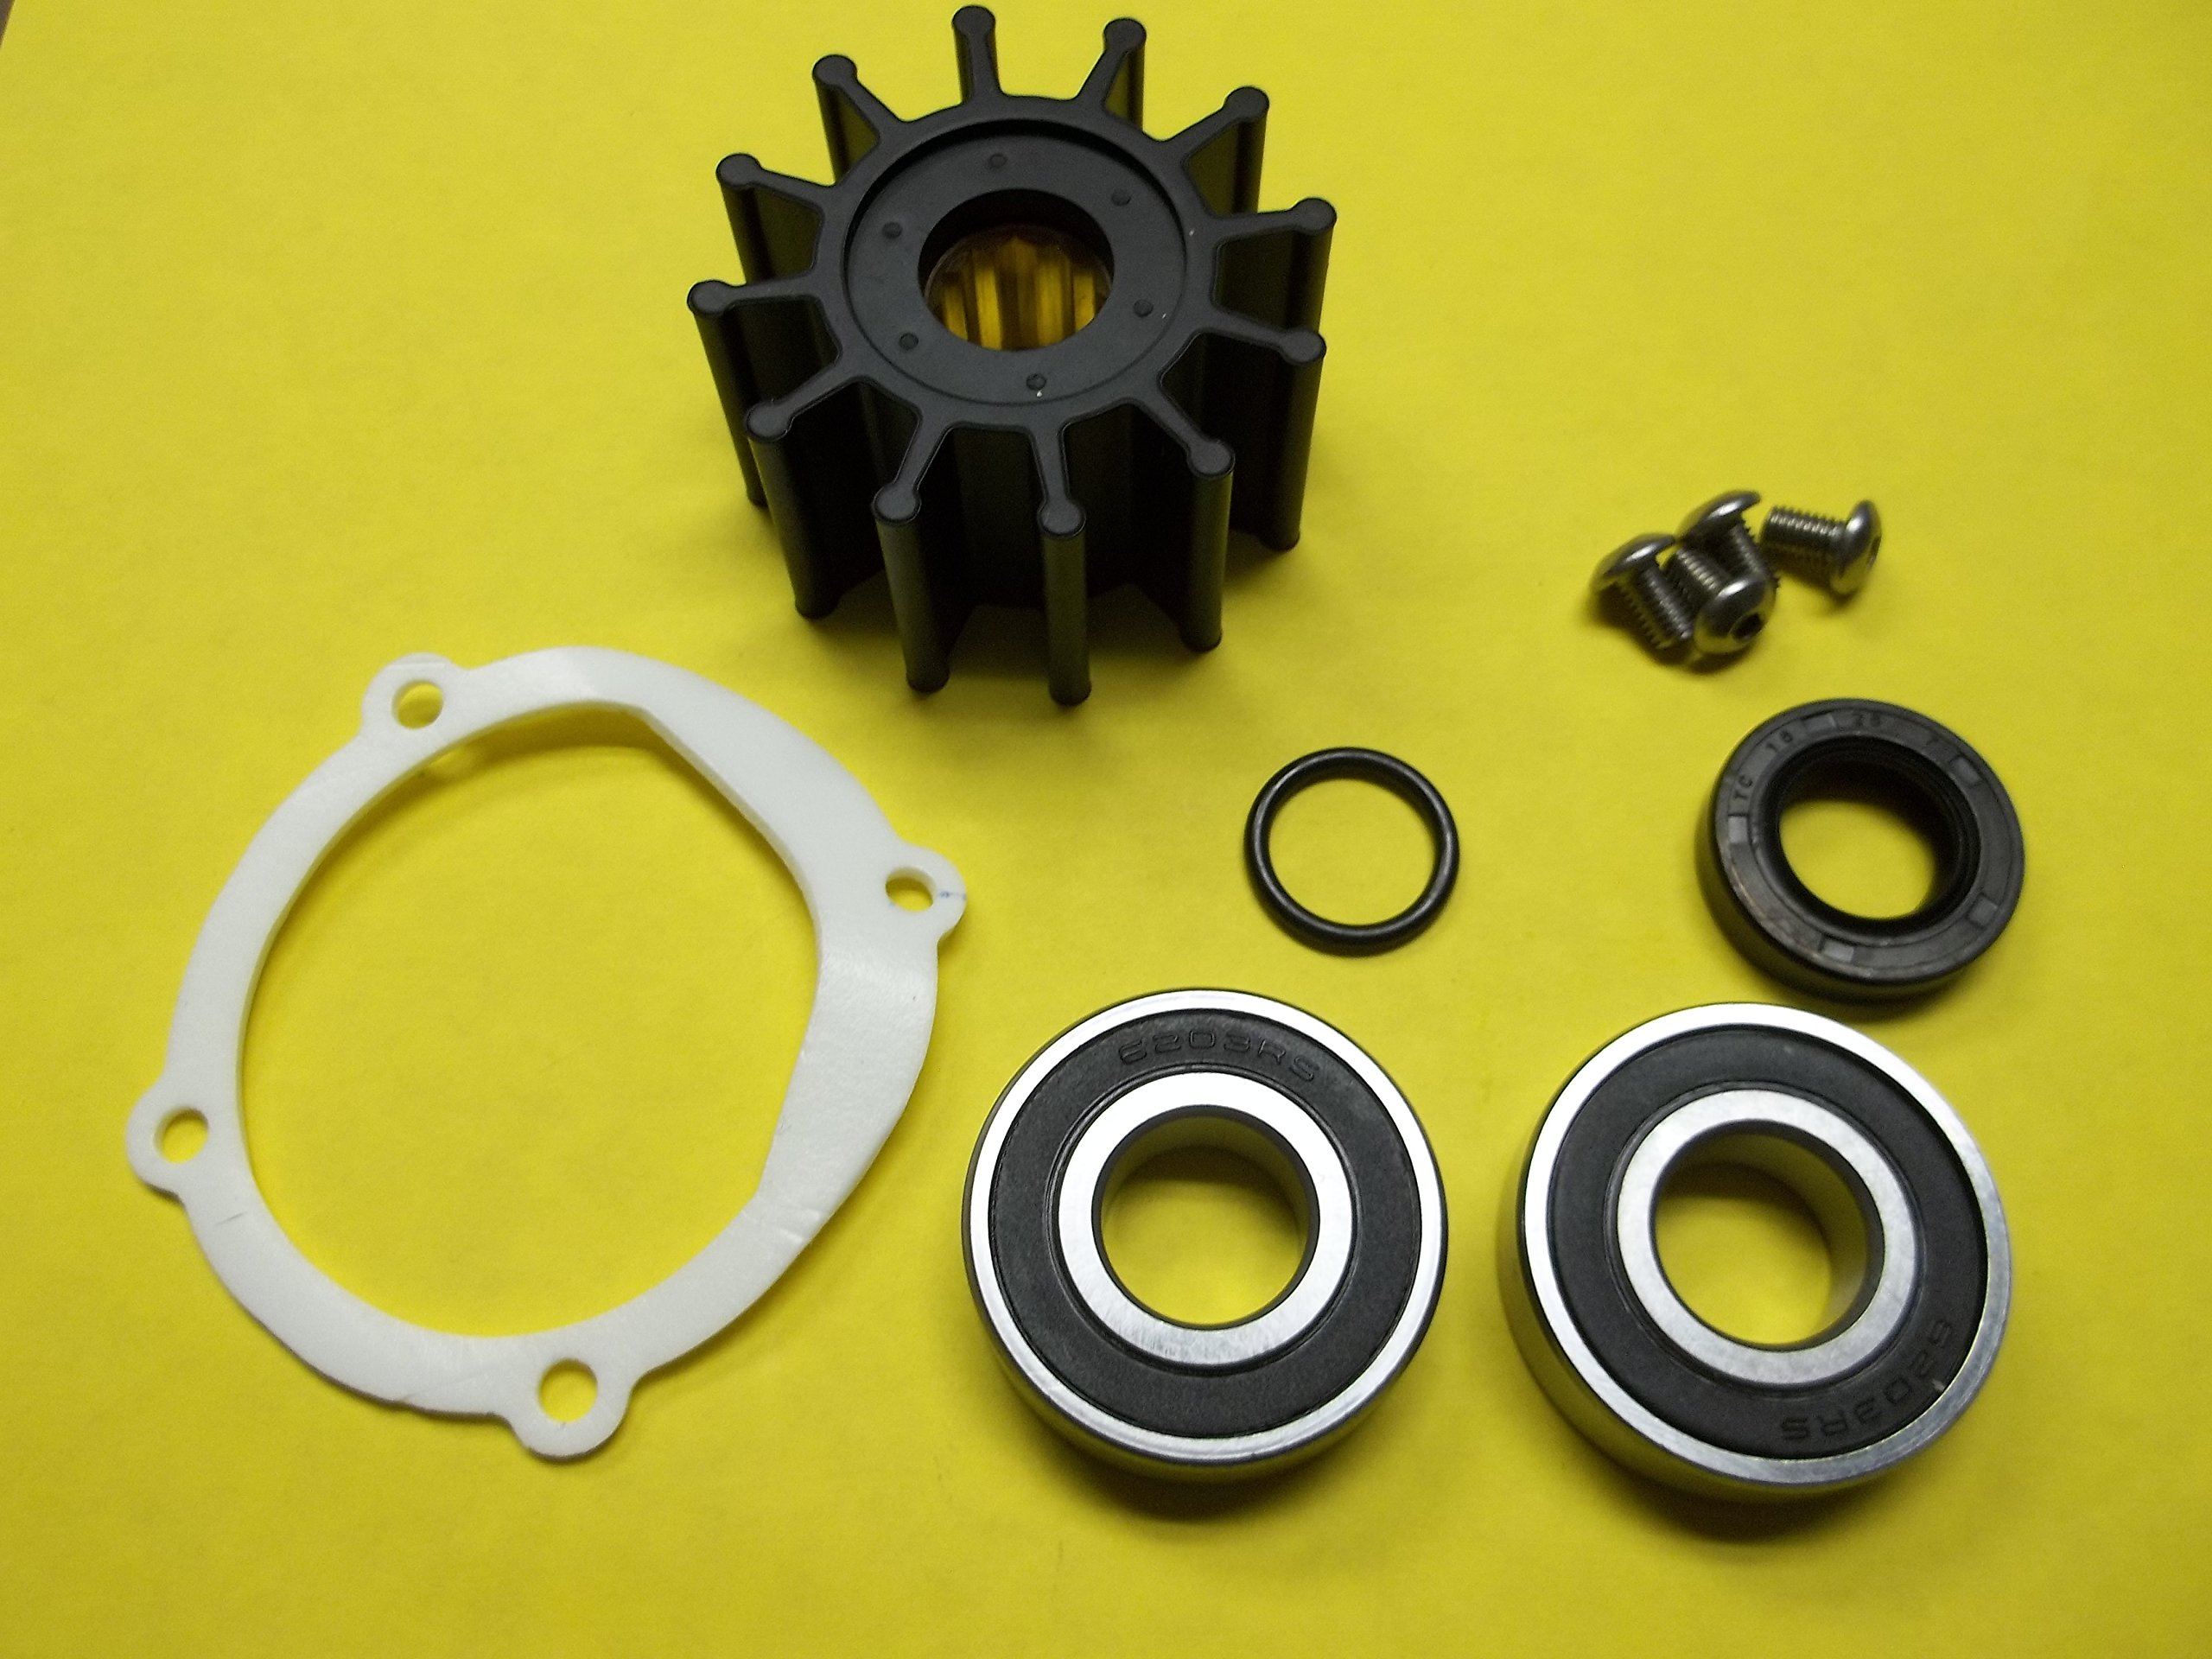 Johnson Sea Water Pump Repair Service rebuild Kit with bearings and Impeller 09-1027B-1 F5B-9 10-24228-1